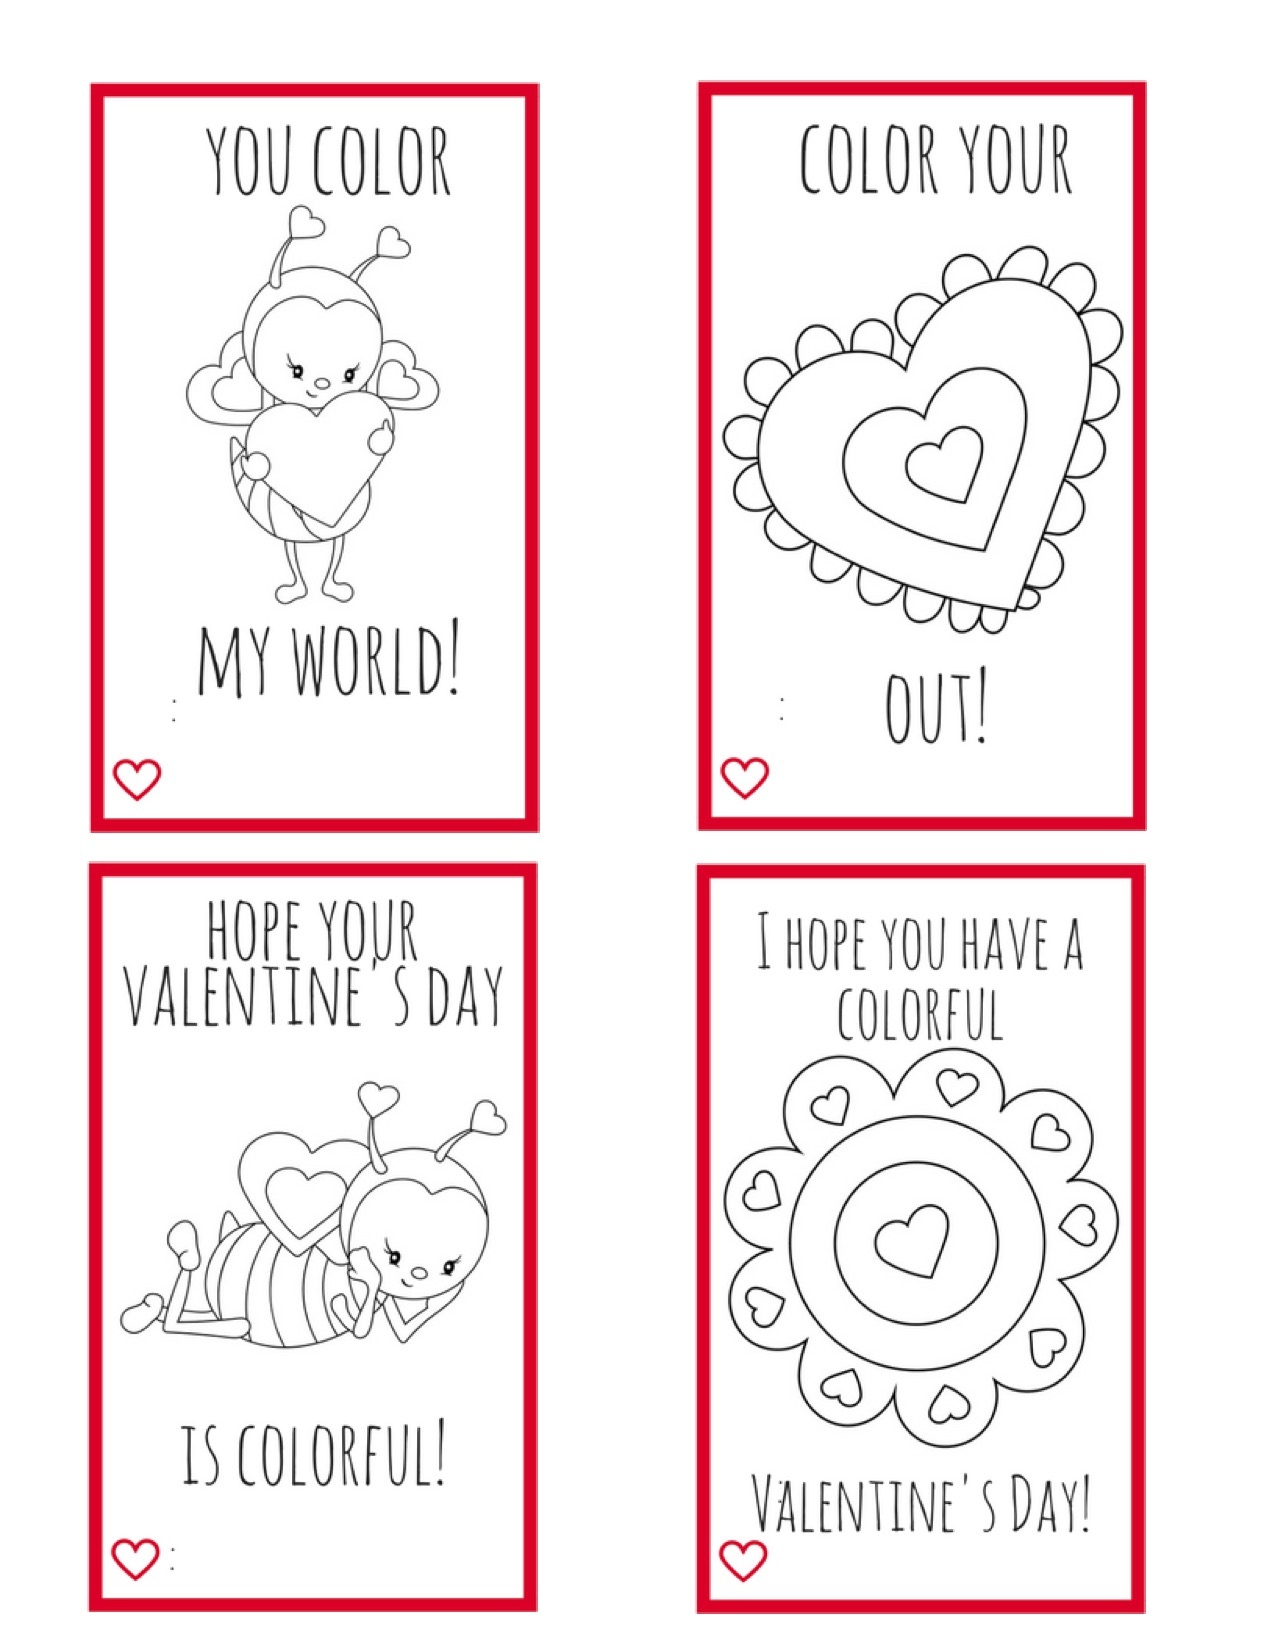 Printable Valentine Cards For Kids--Perfect For Kids To Make For - Free Printable Color Your Own Cards